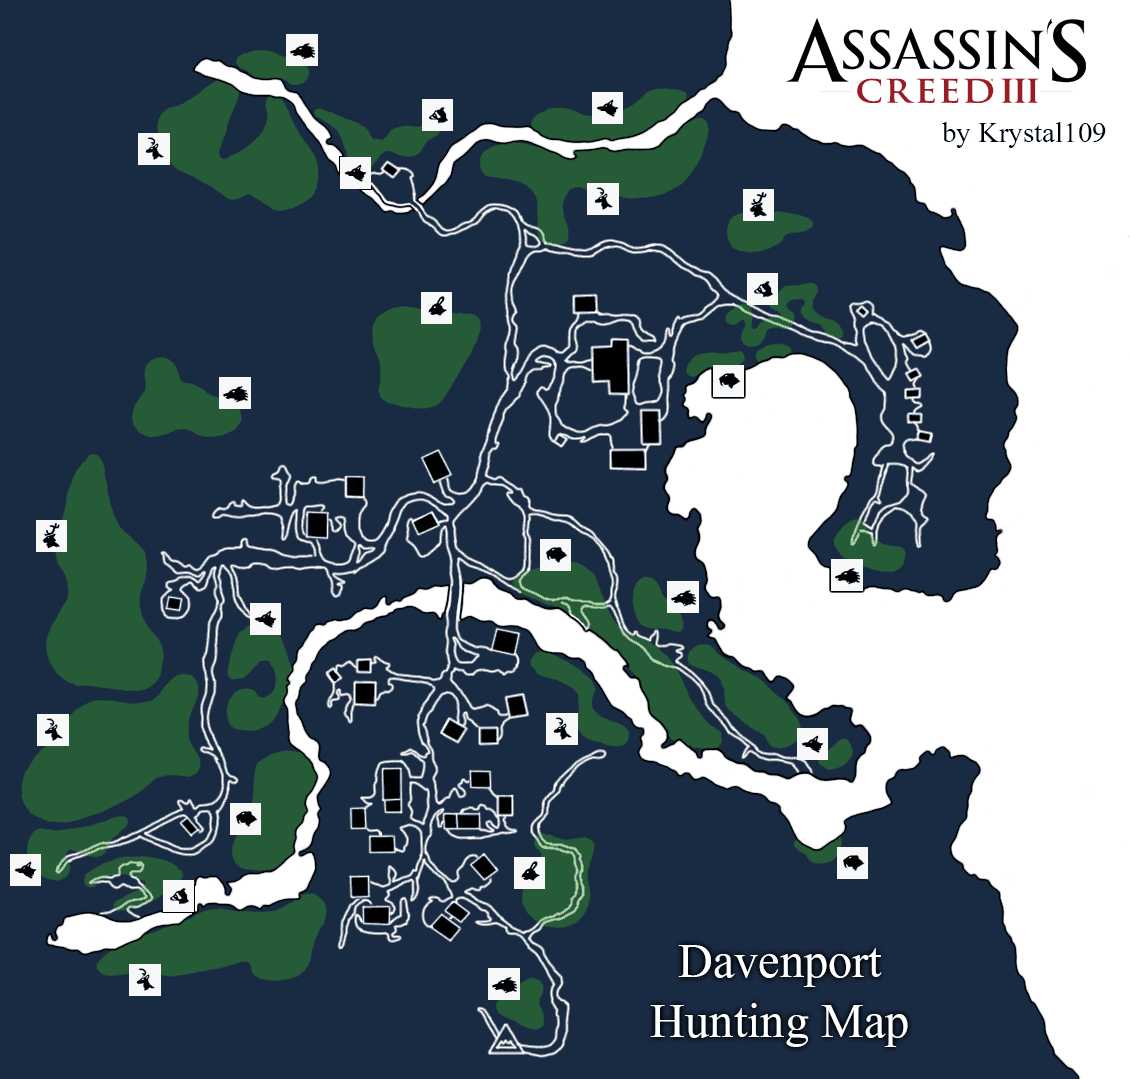 Assassin\\\\\\\\\\\\\\\\\\\\\\\\\\\\\\\'s Creed 3 Map Assassin's Creed III Davenport Hunting Map (PNG) v1.0   Neoseeker  Assassin\\\\\\\\\\\\\\\\\\\\\\\\\\\\\\\'s Creed 3 Map